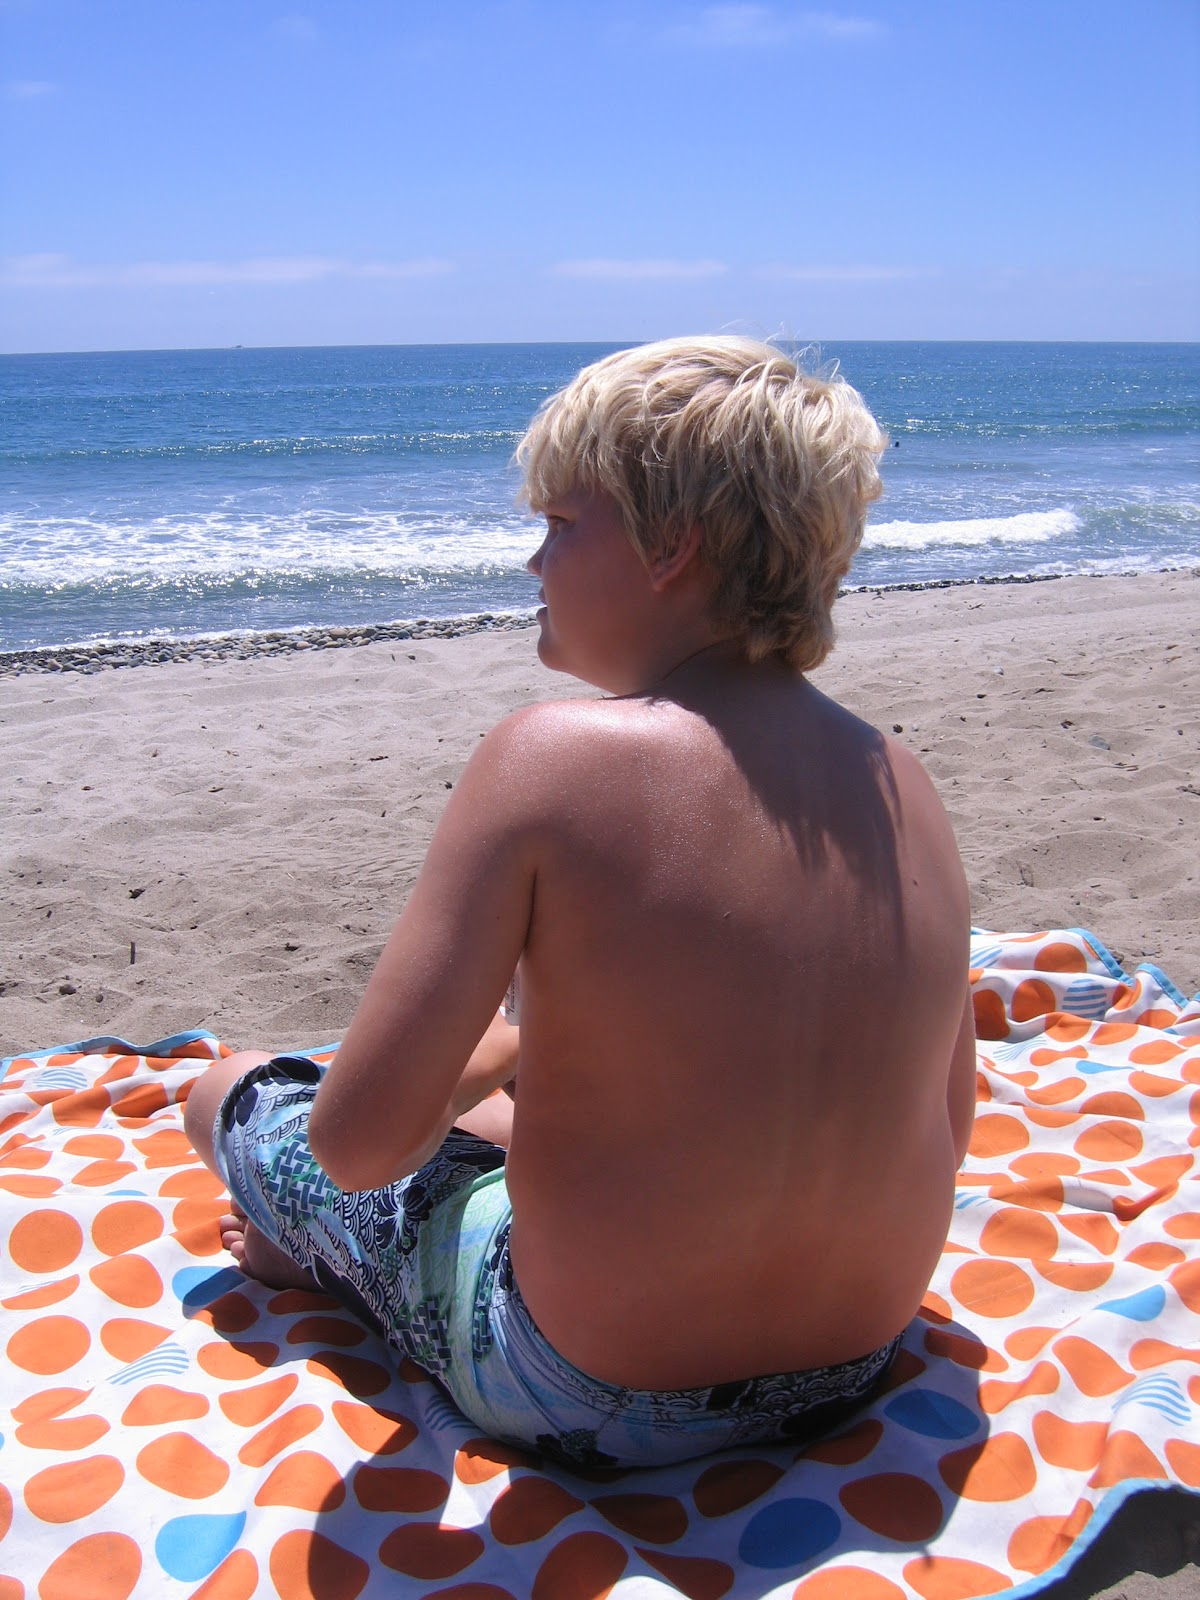 The Starnes Family: Camping Trip - San Onofre, California